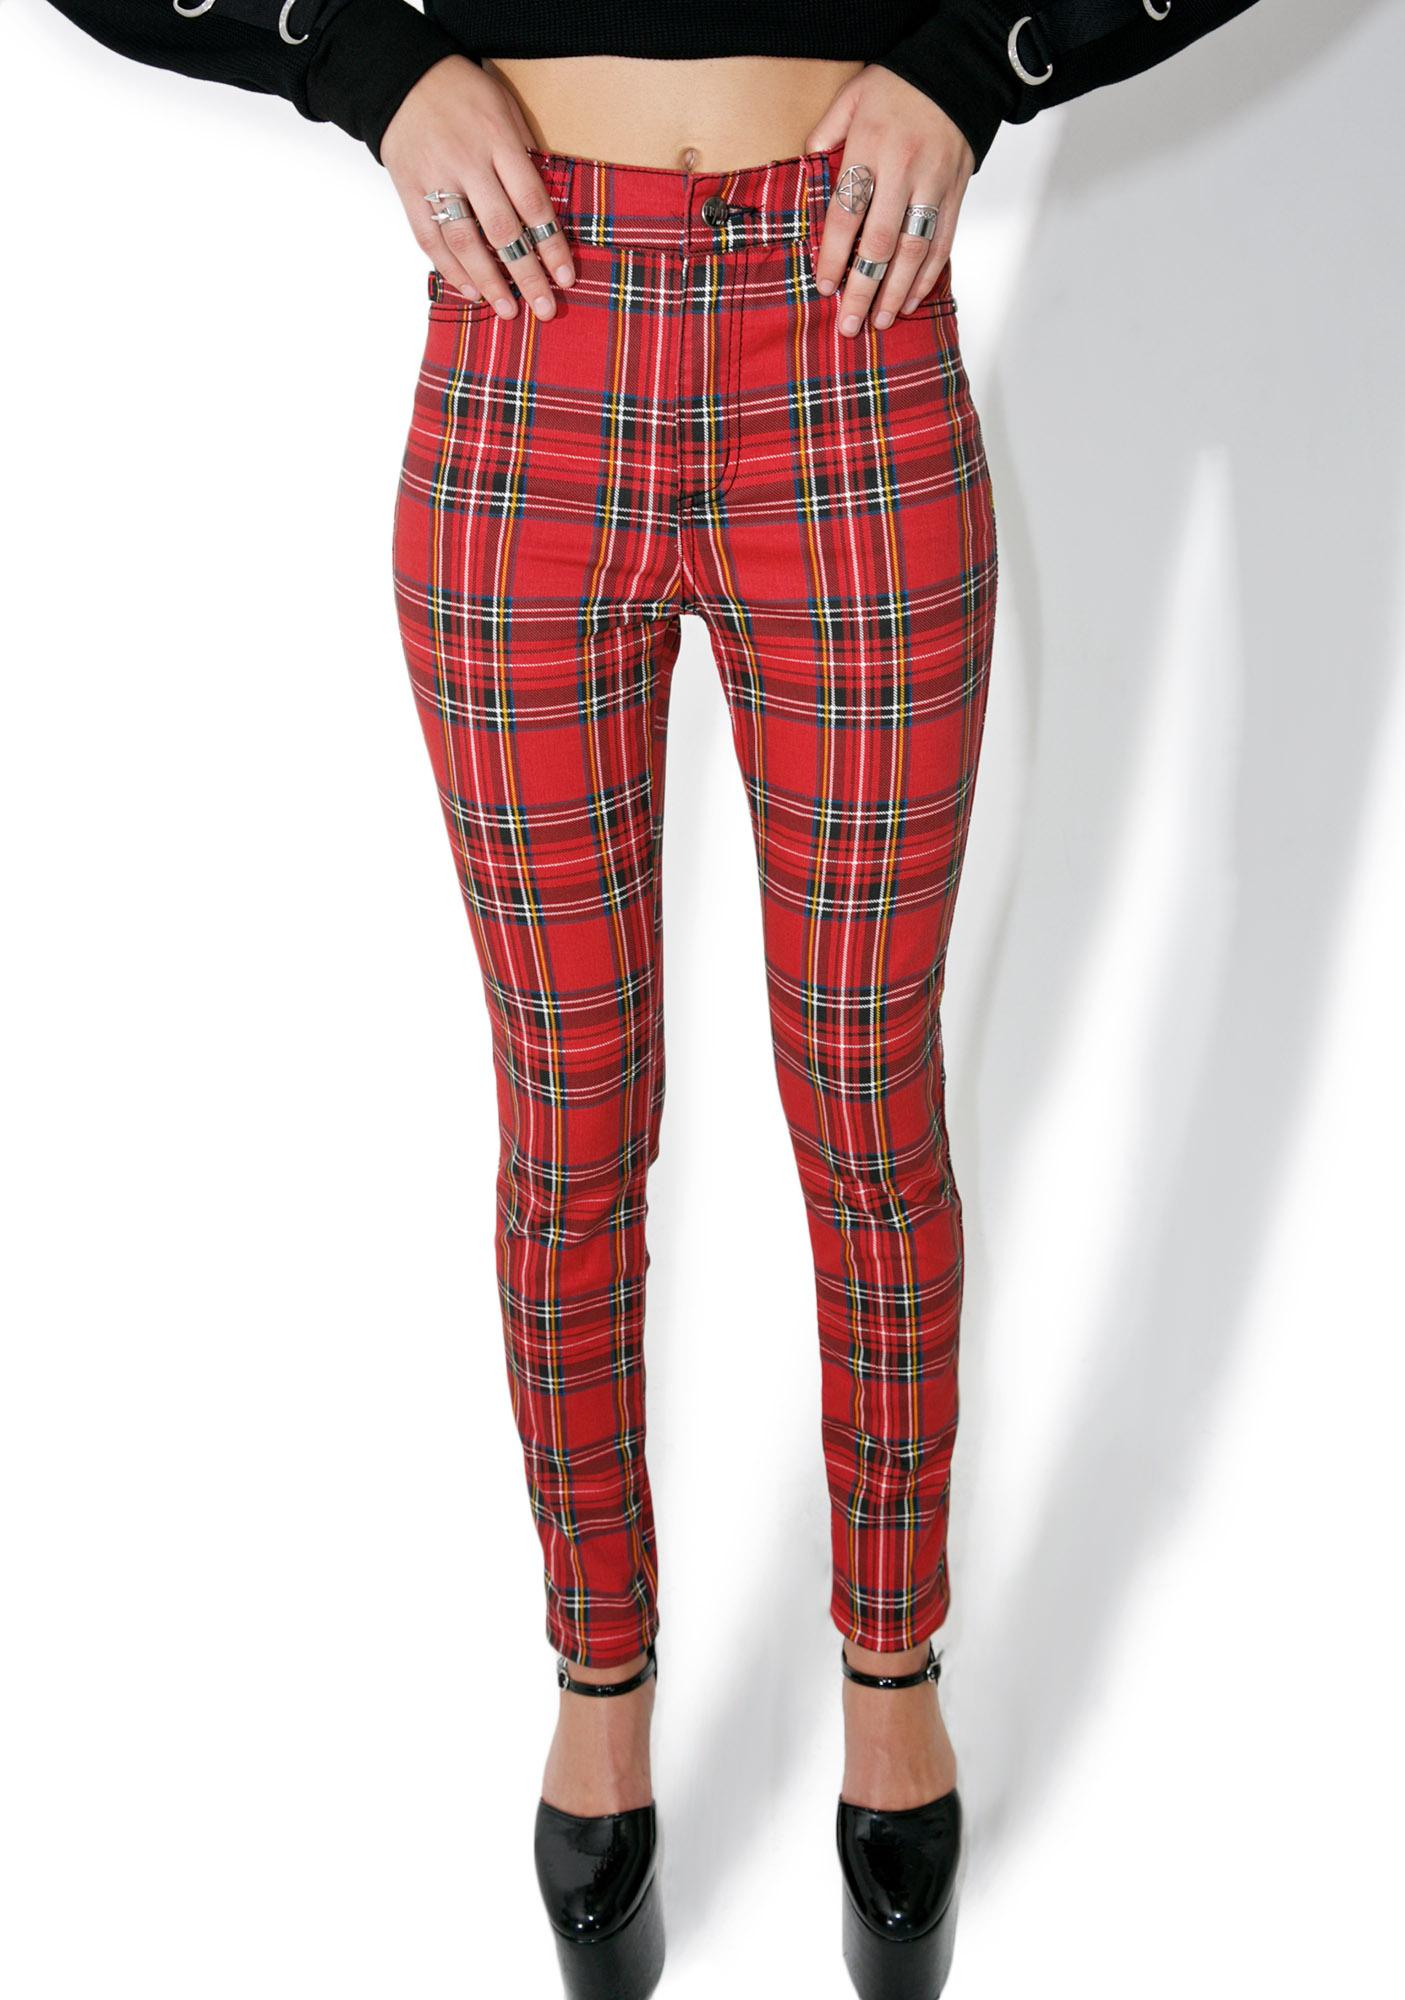 Women's Plaid Pants. Showing 48 of results that match your query. Search Product Result. Product - Women's Knit Pull On Pants. Best Seller. Product Image. Price $ Product Title. Women's Knit Pull On Pants. See Details. Product - Time and Tru Women's Millennium Pants. Product Image. Price $